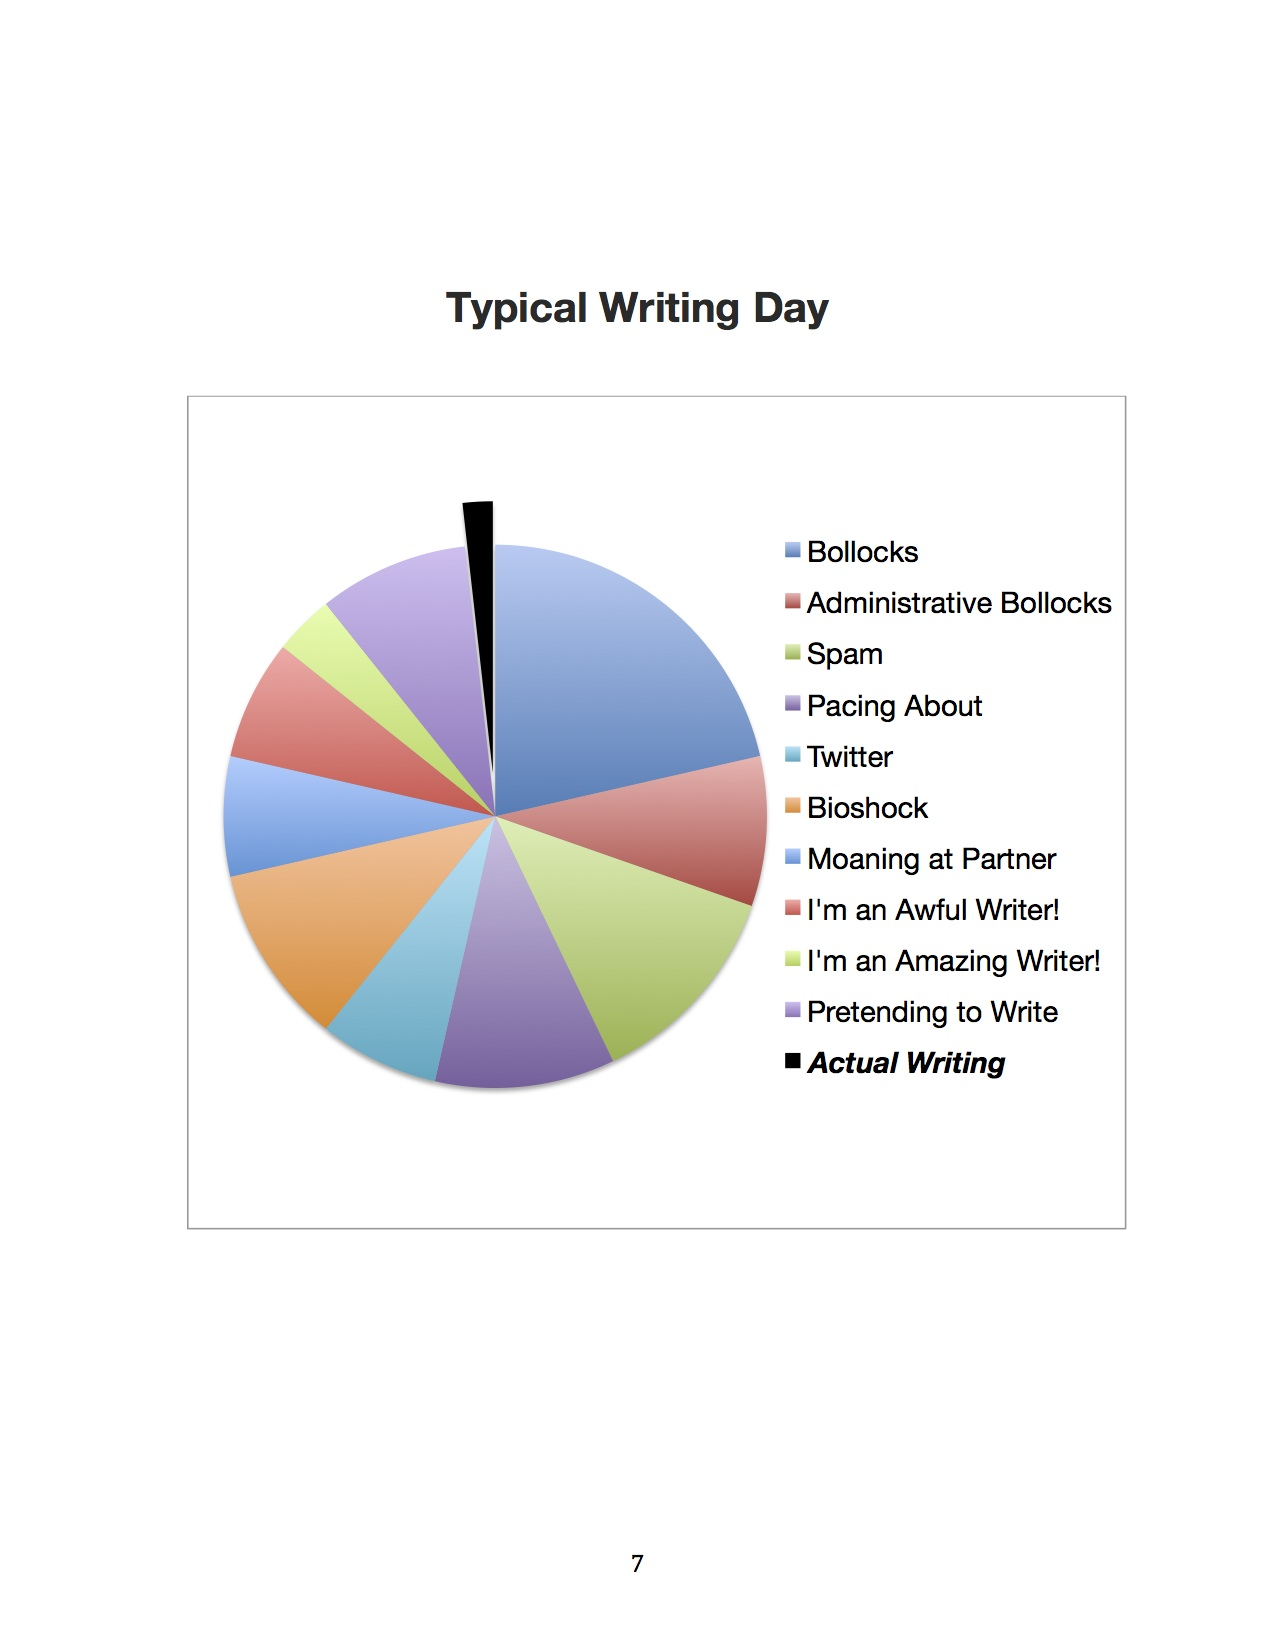 Typical Writing Day?